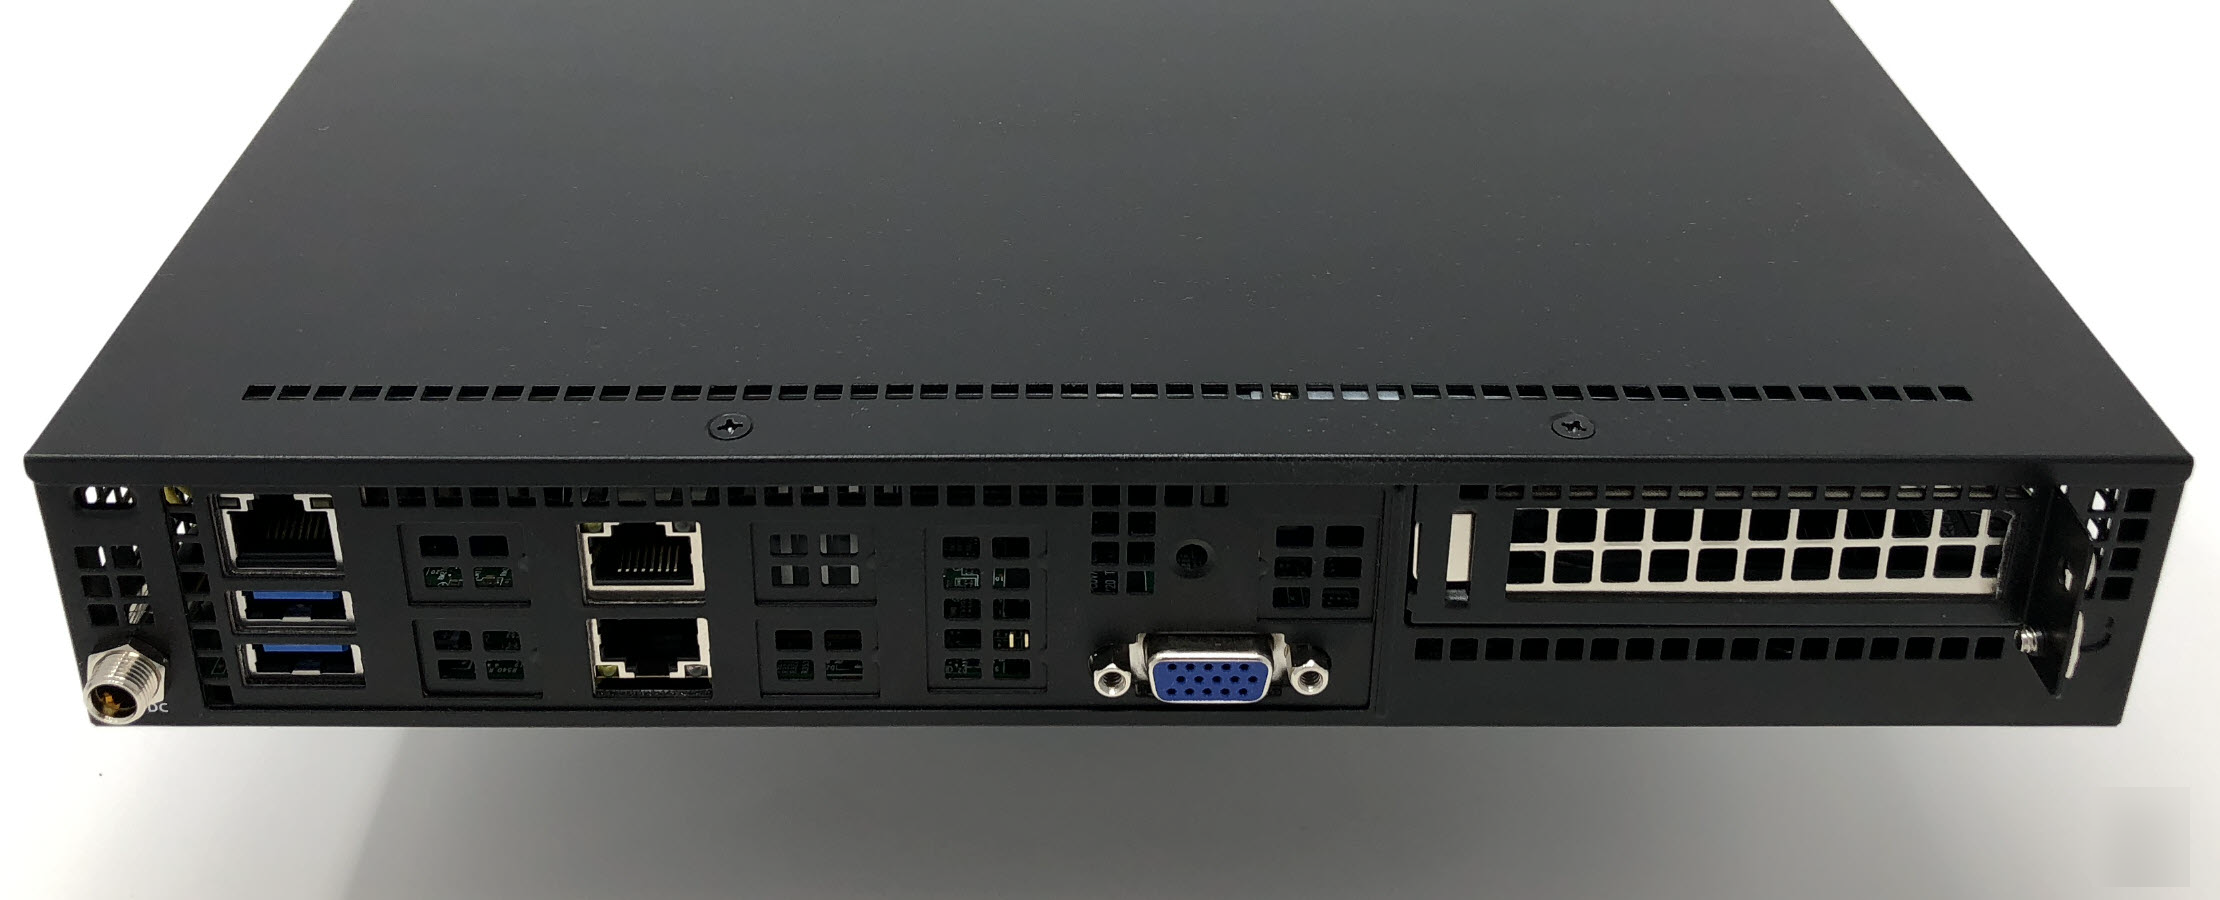 Hands-on the new Supermicro SuperServer SYS-E300-9D featuring 4 core